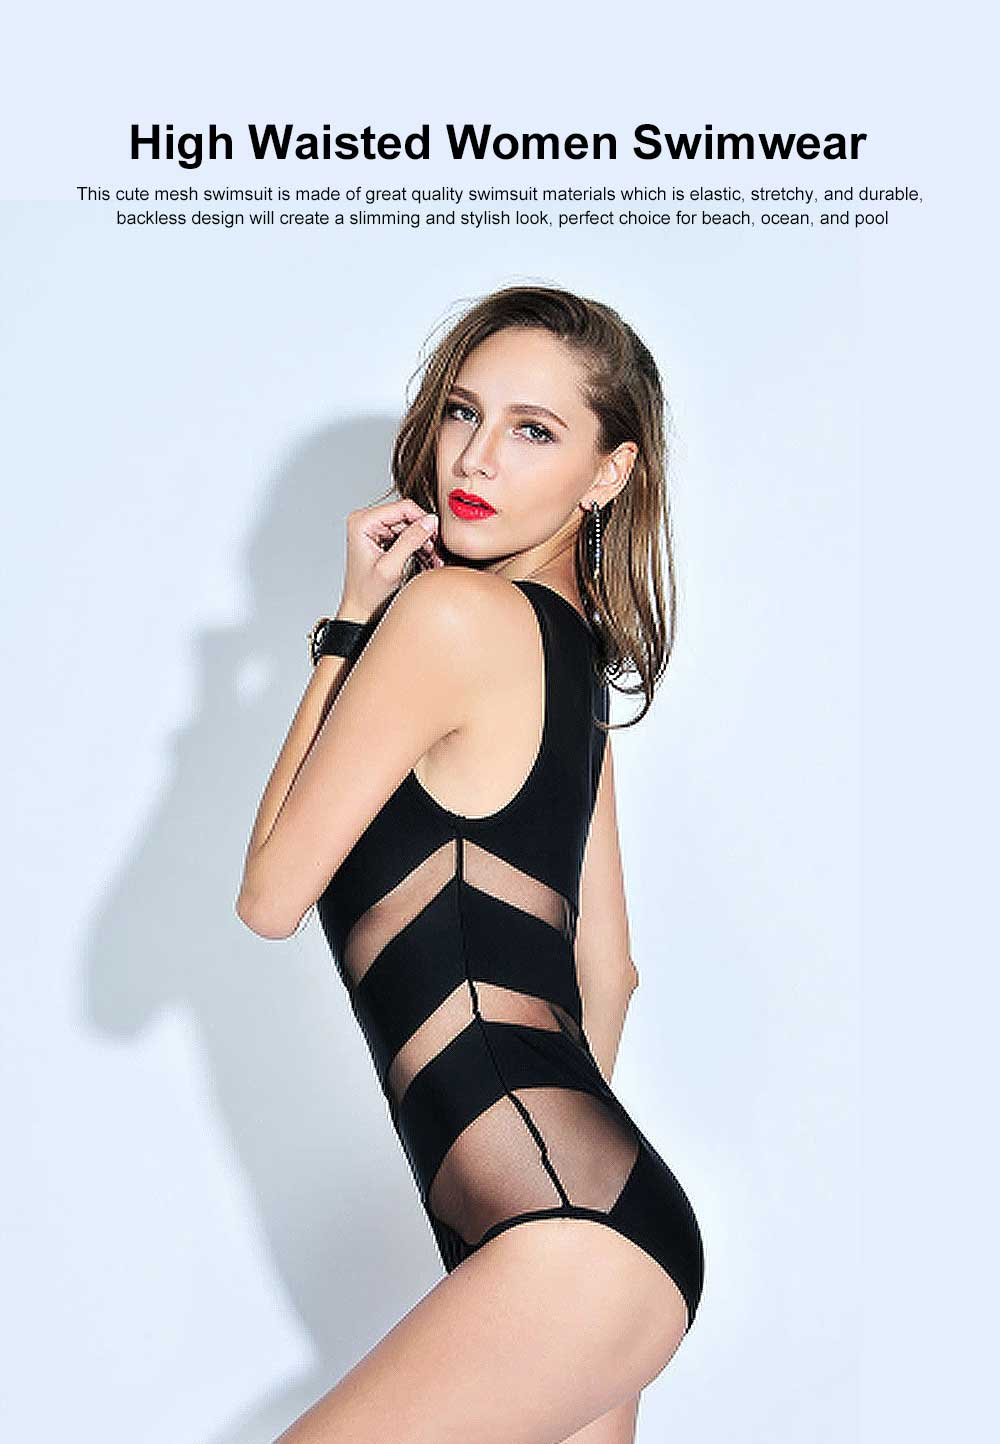 Sexy One Piece Swimsuits for Women, High Waisted Mesh Ruched Cutout Slim fit Swimwear  Beach, Ocean, and Pool 0